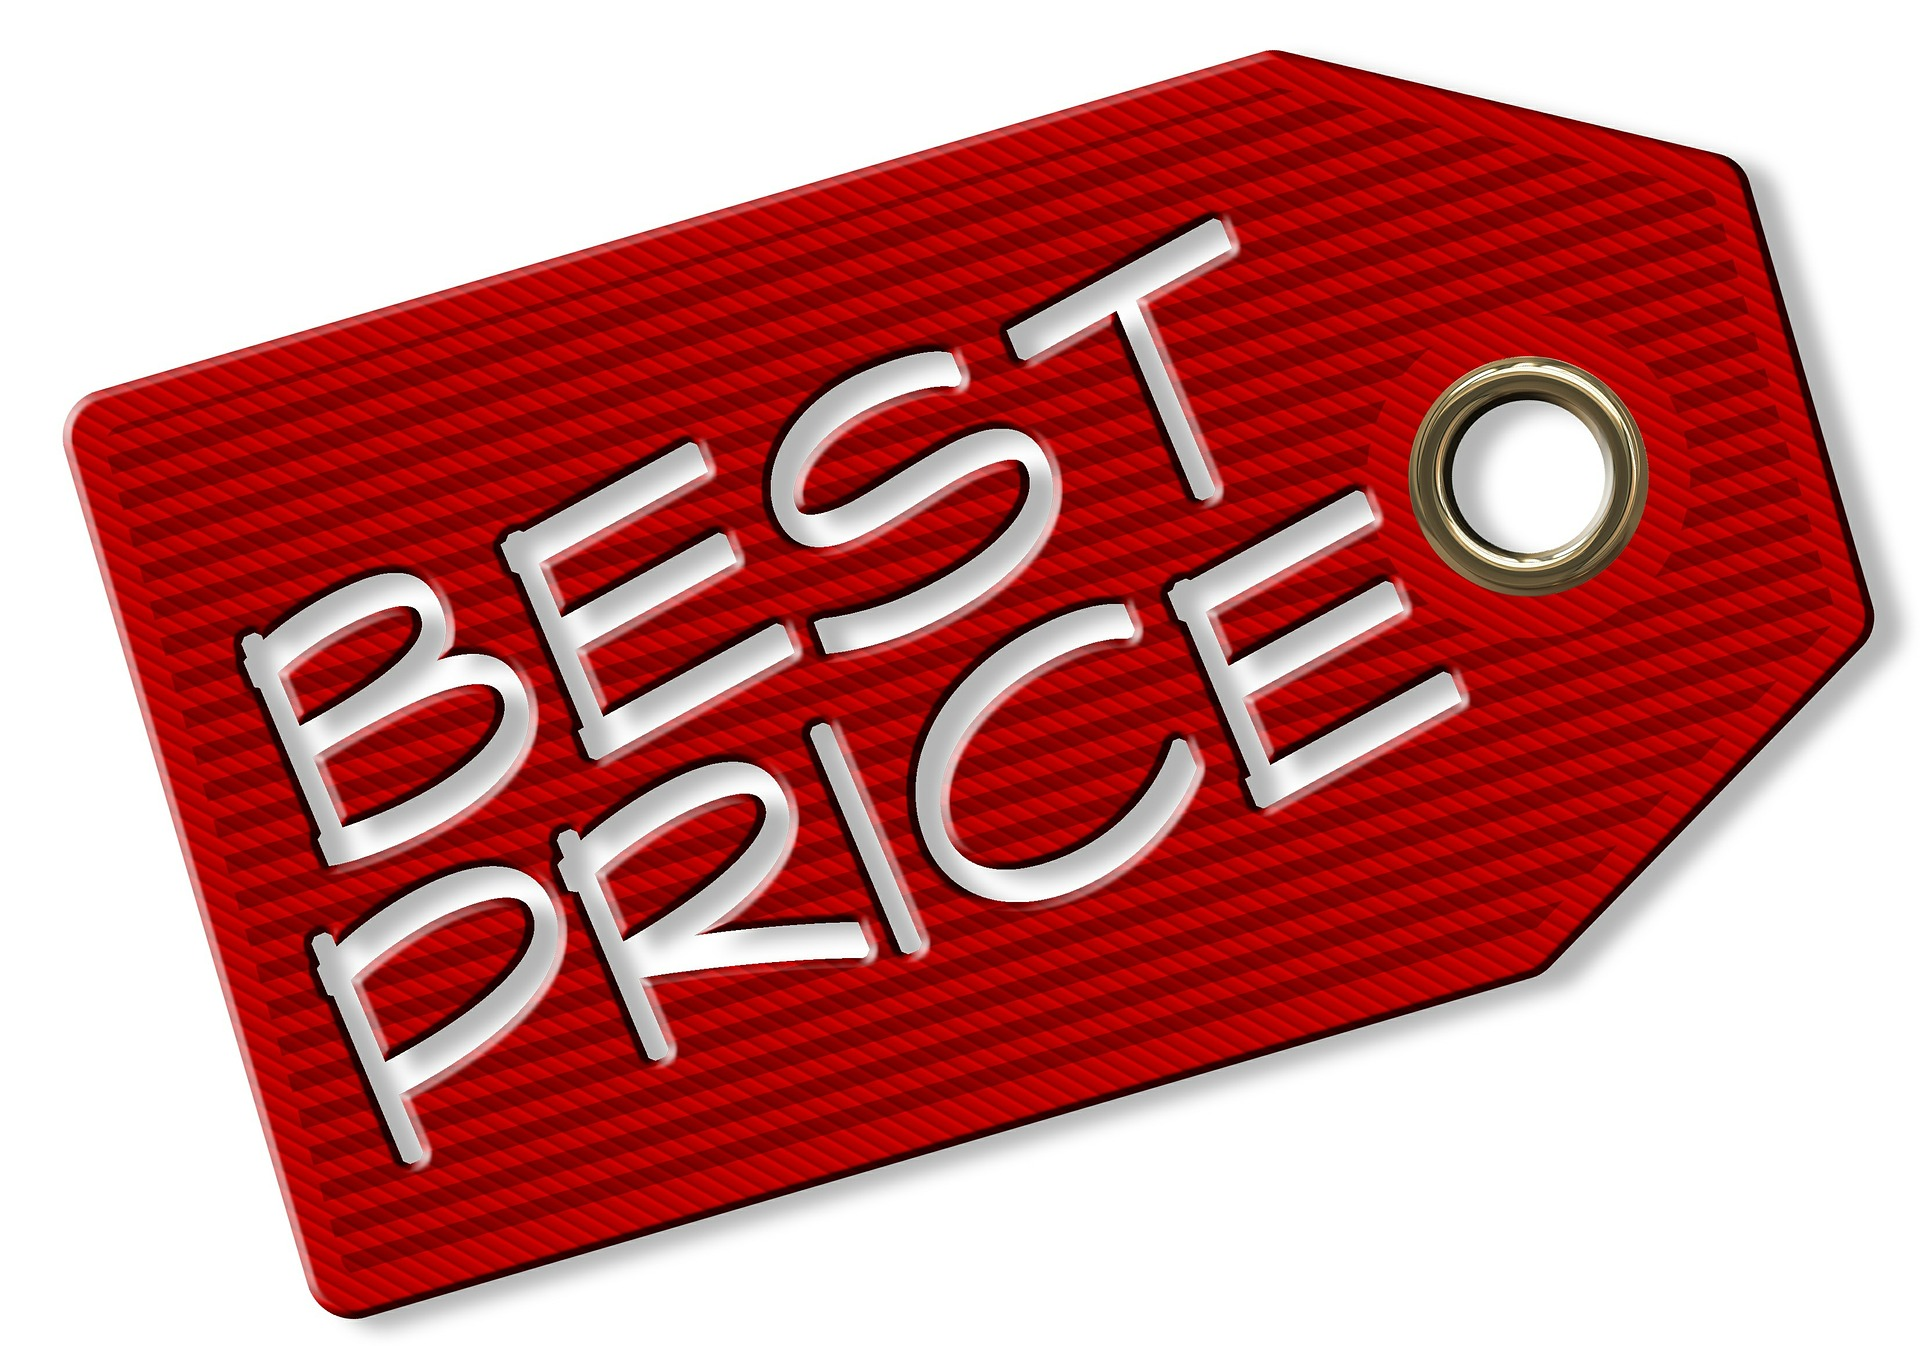 An image showing best price tag